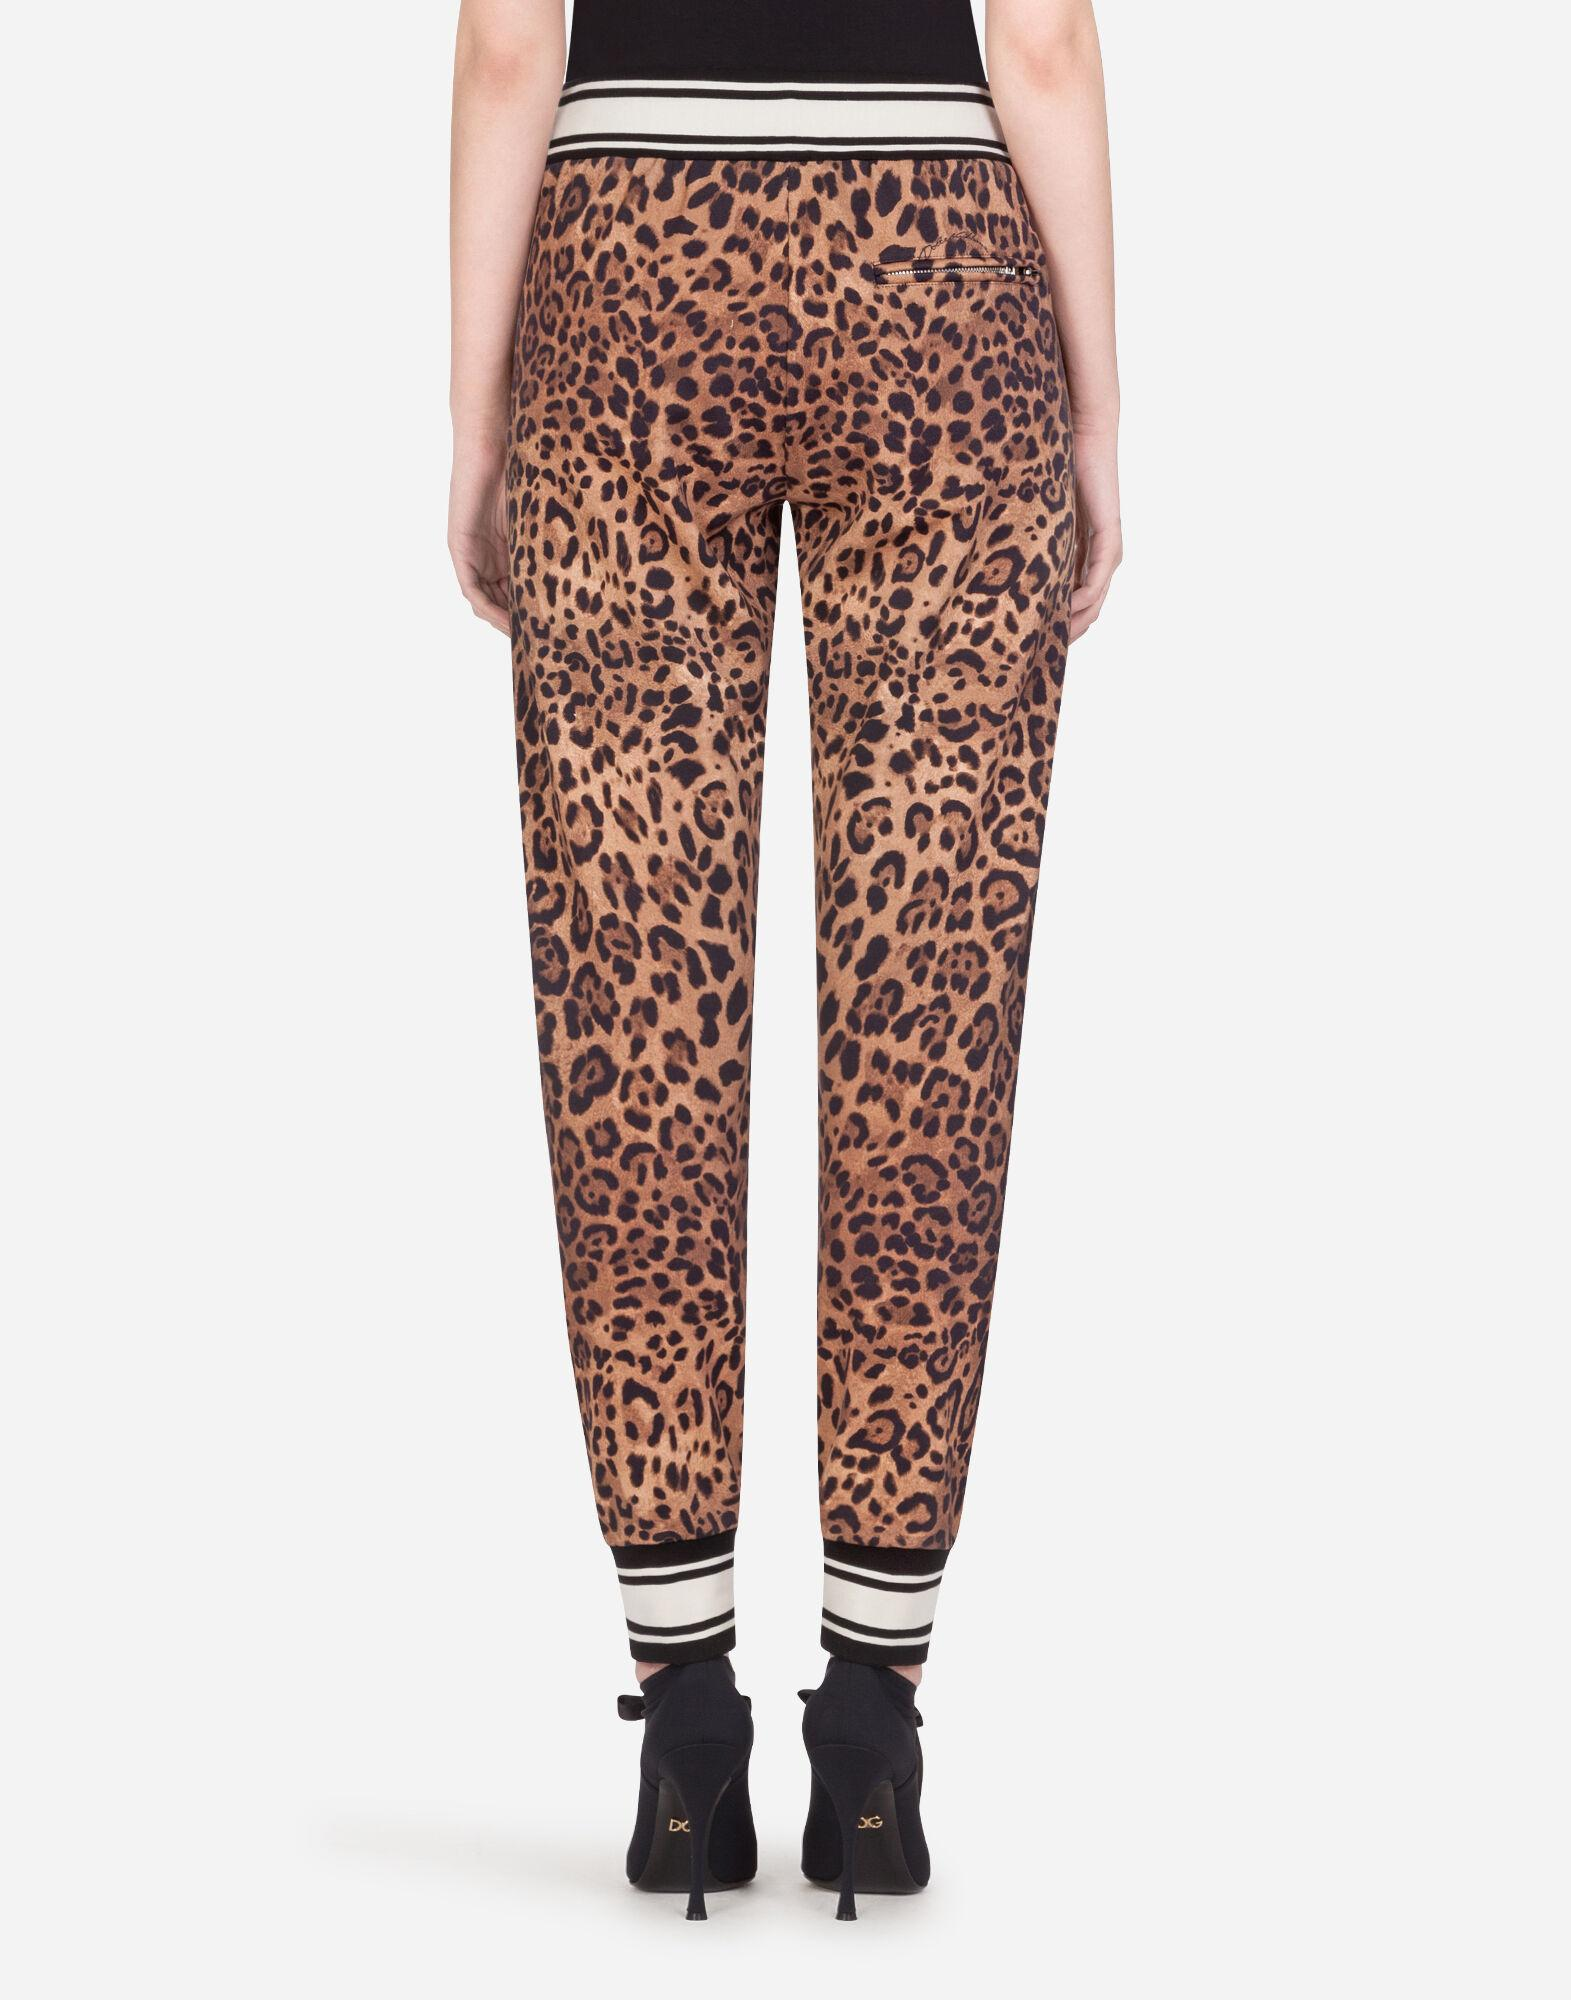 Jersey jogging pants with leopard print 1